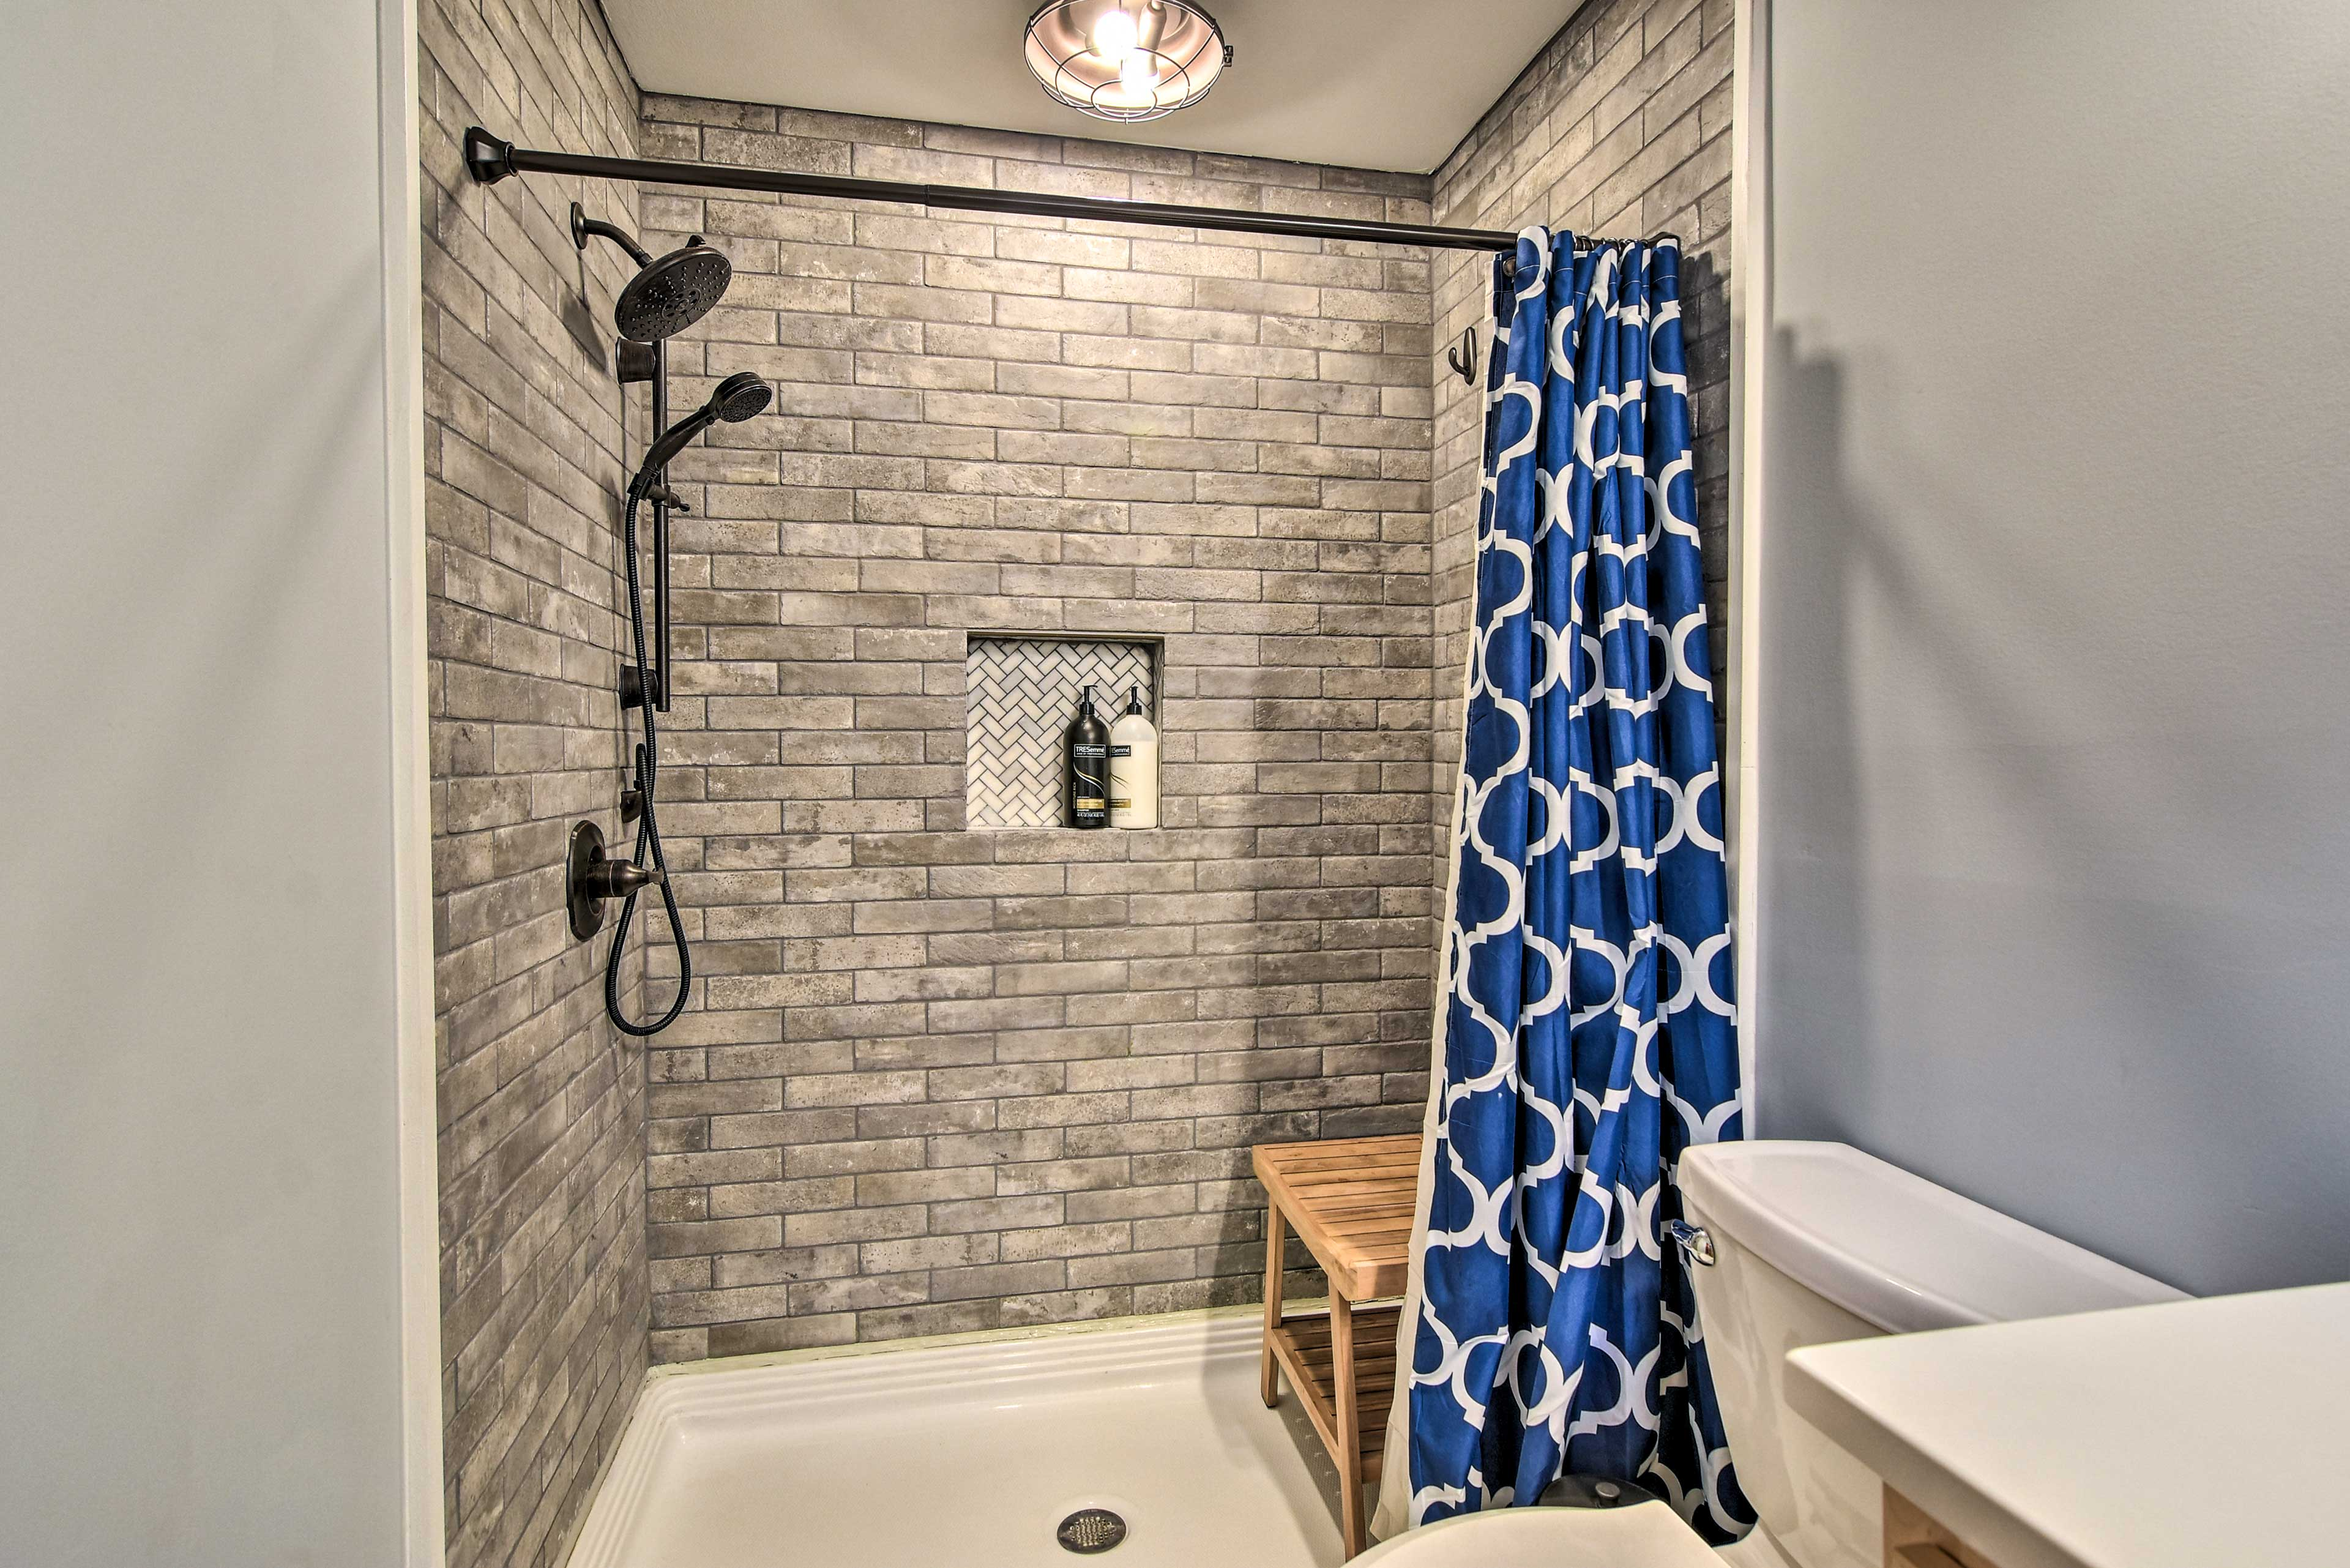 Walk-in showers accommodate all travelers.